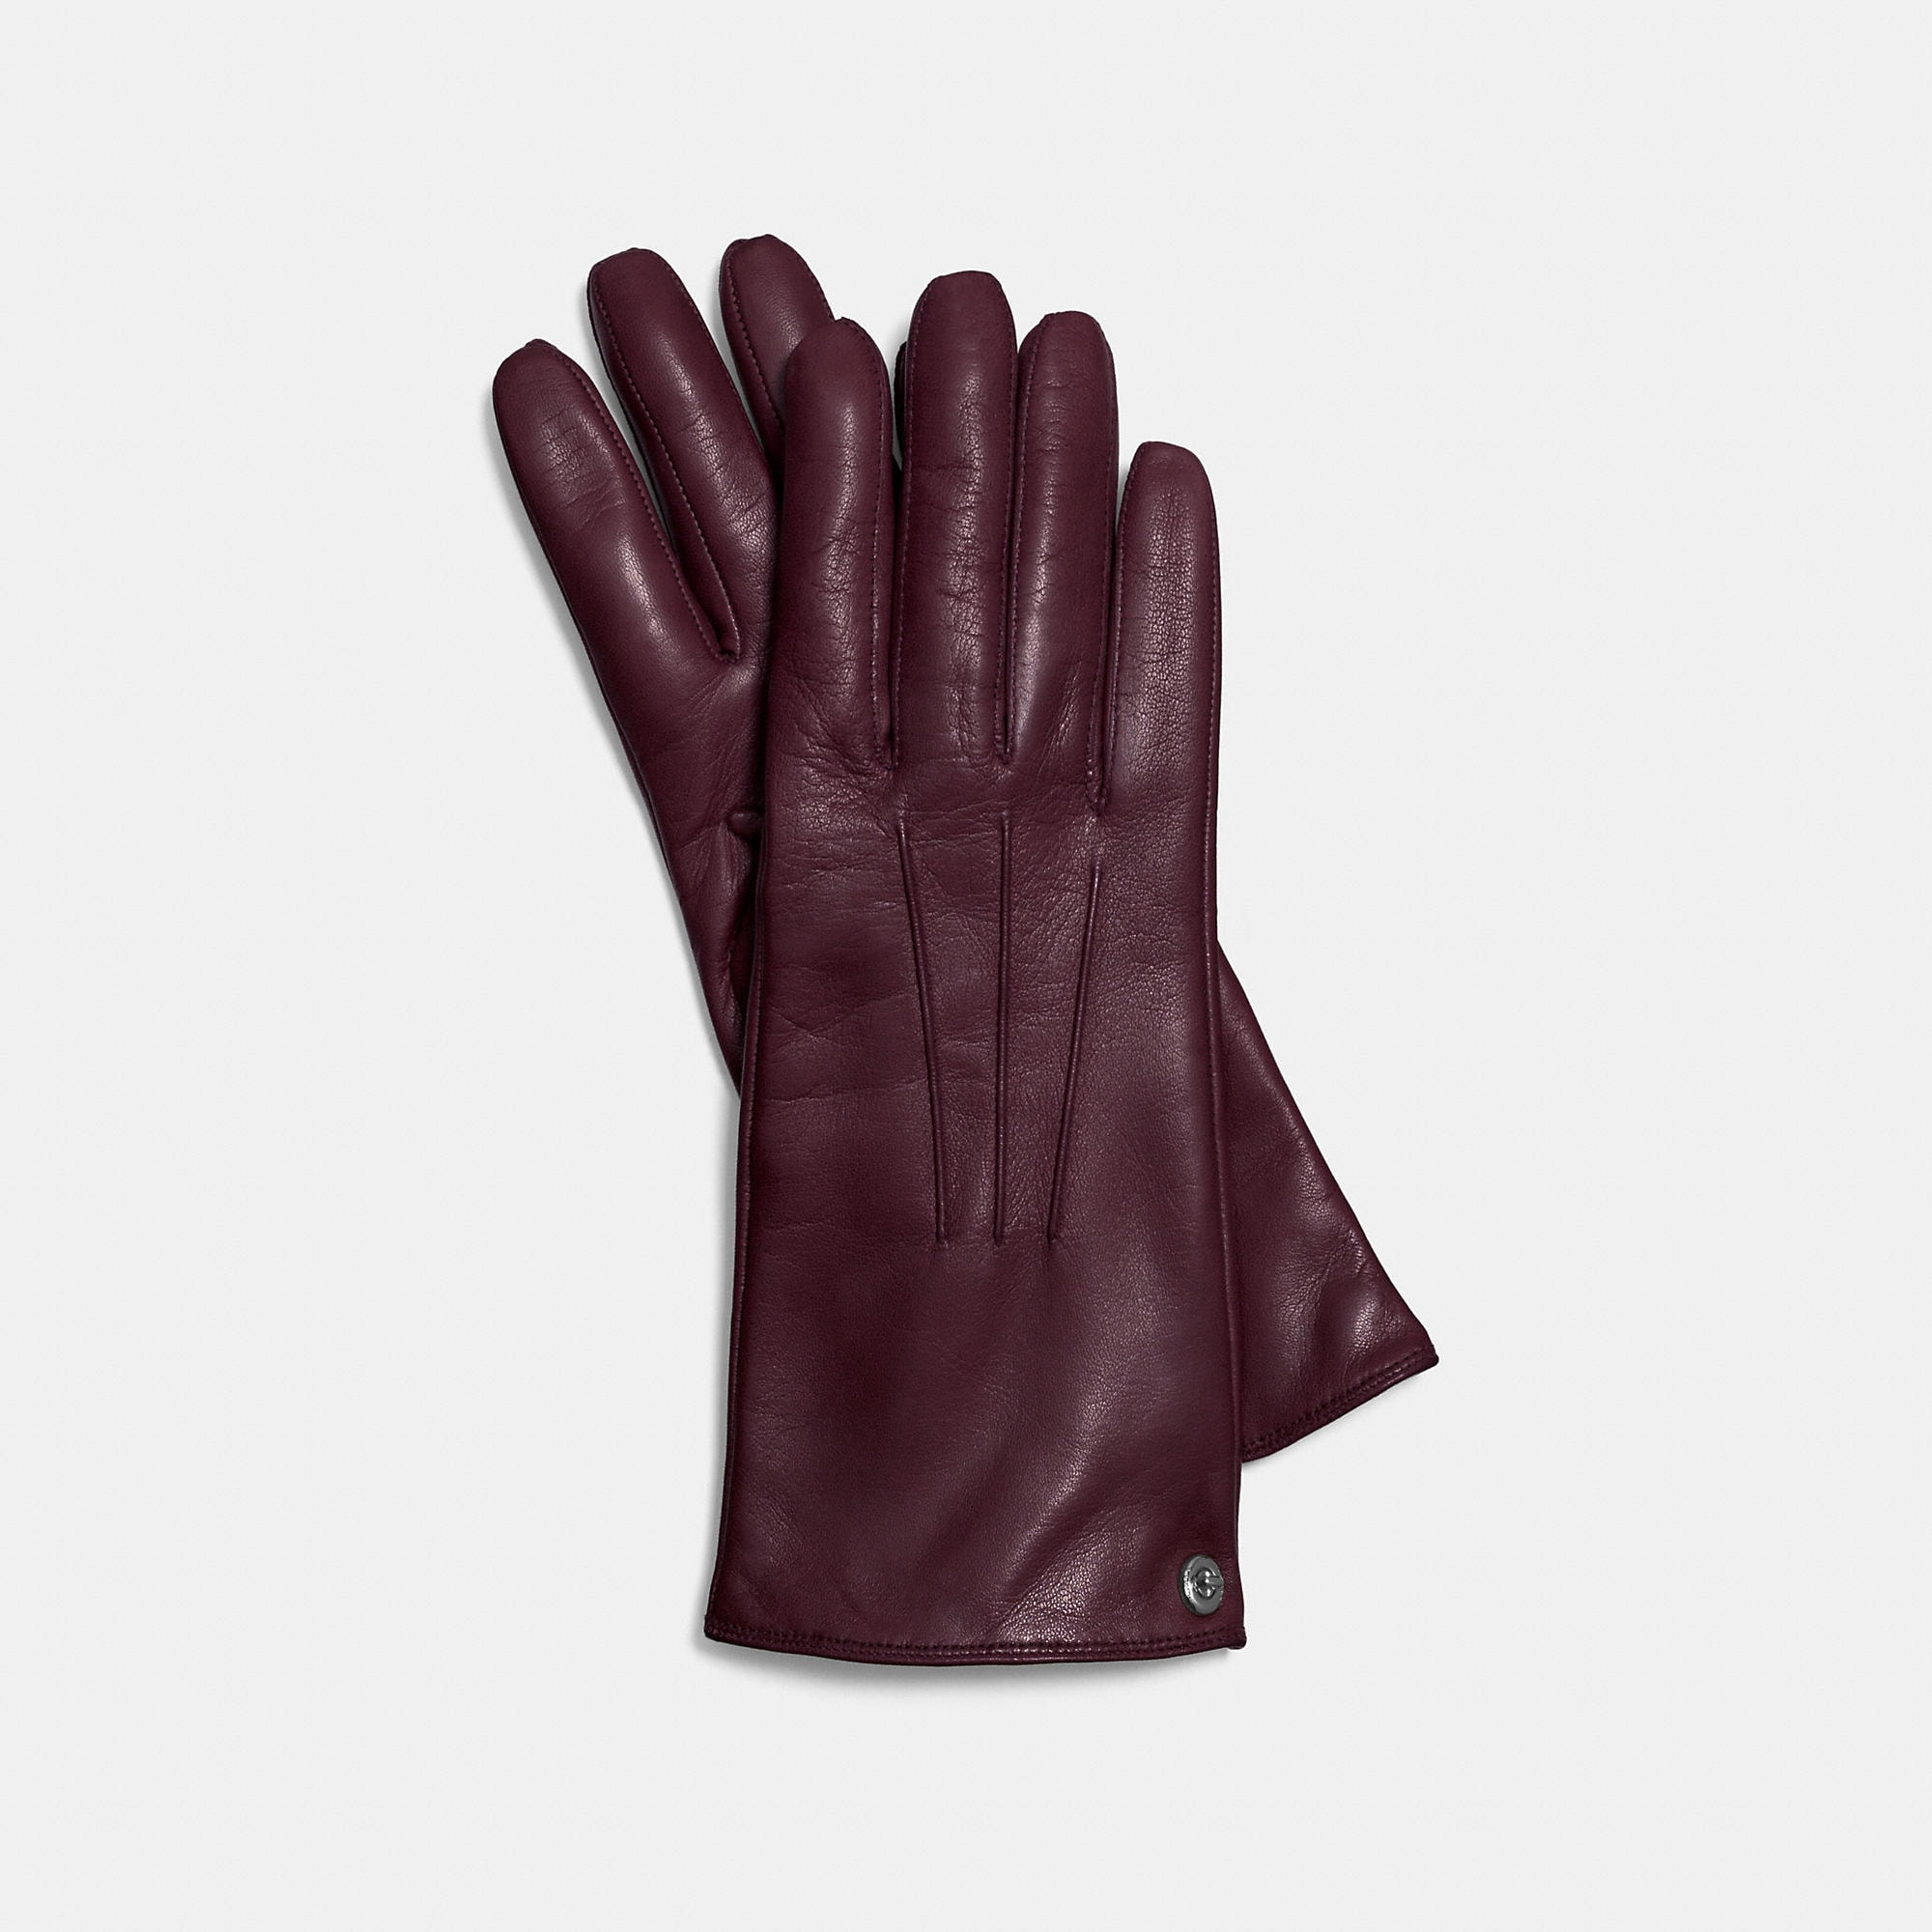 Coach Iconic Leather Glove